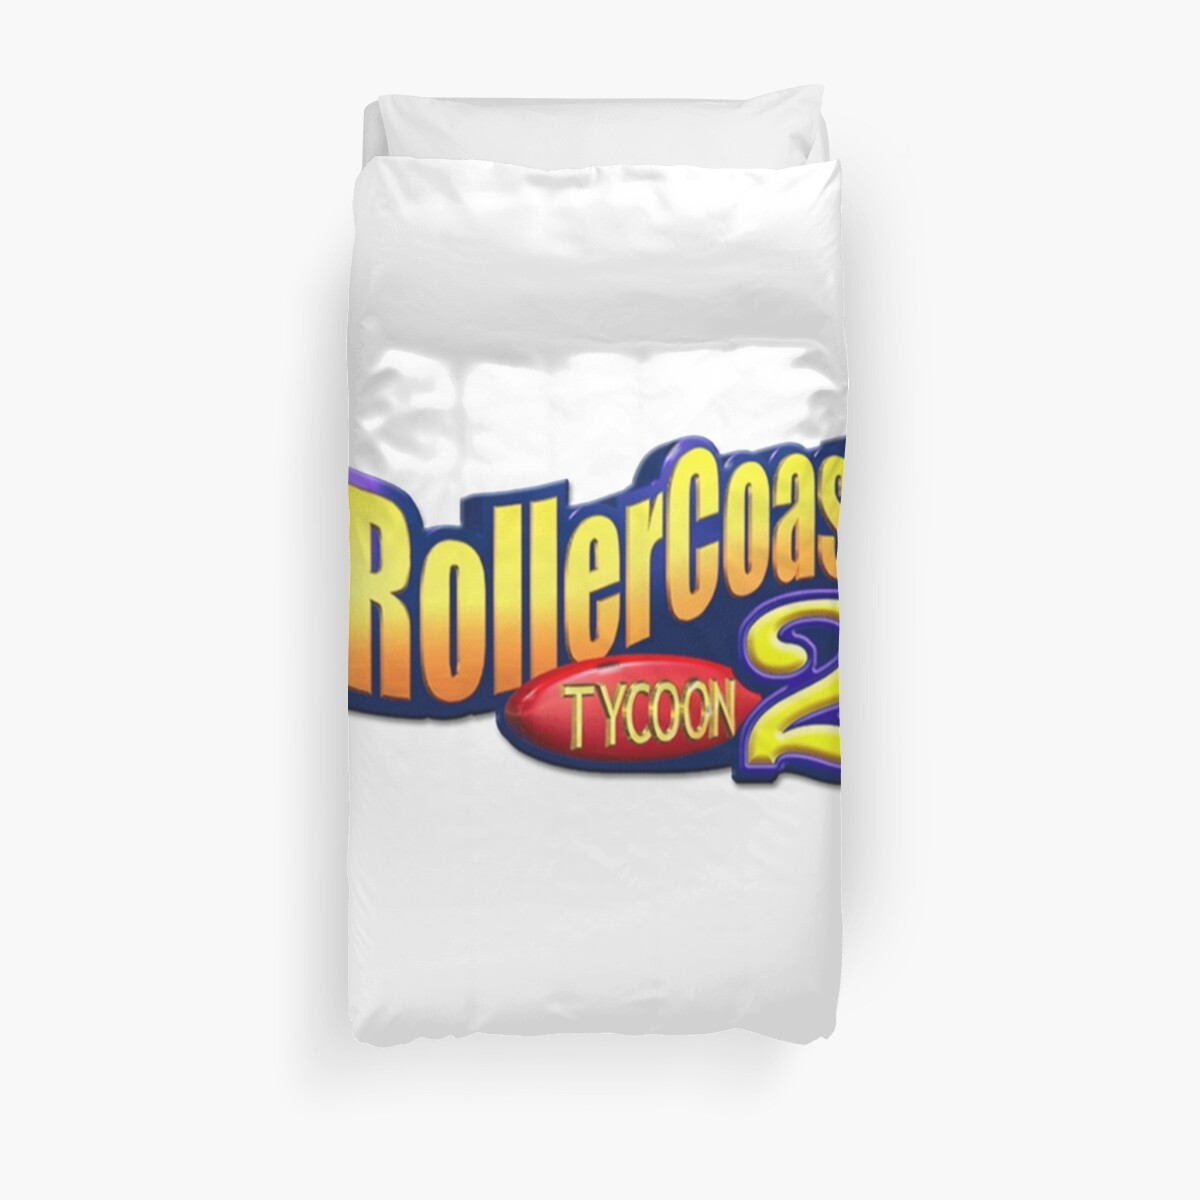 'RollerCoaster Tycoon 2' Duvet Cover by MammothTank